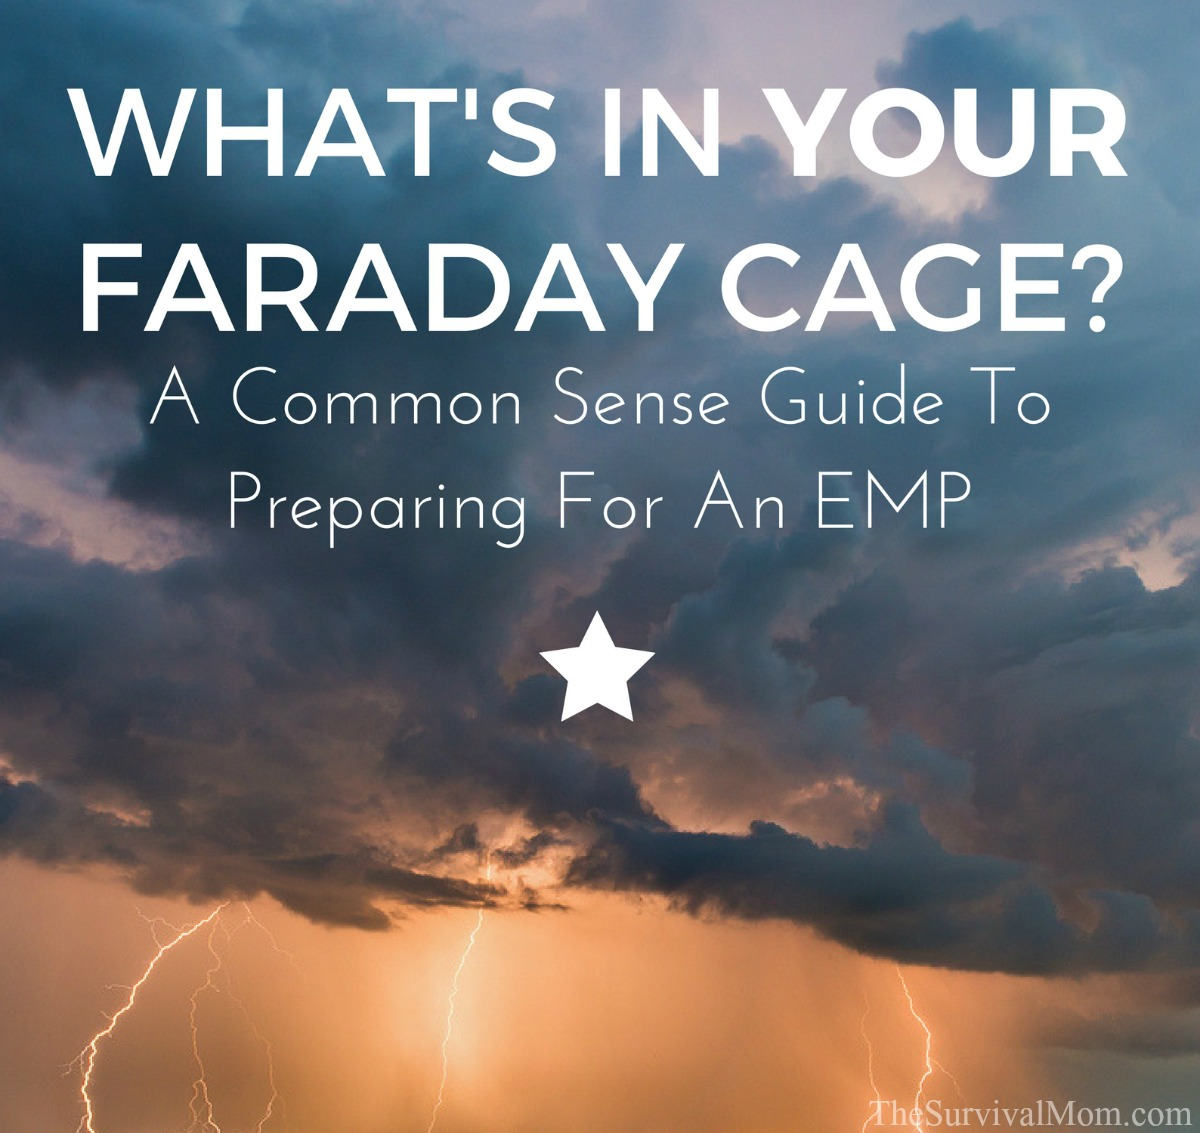 What's In Your Faraday Cage A Common Sense Guide to Preparing For An EMP via The Survival Mom